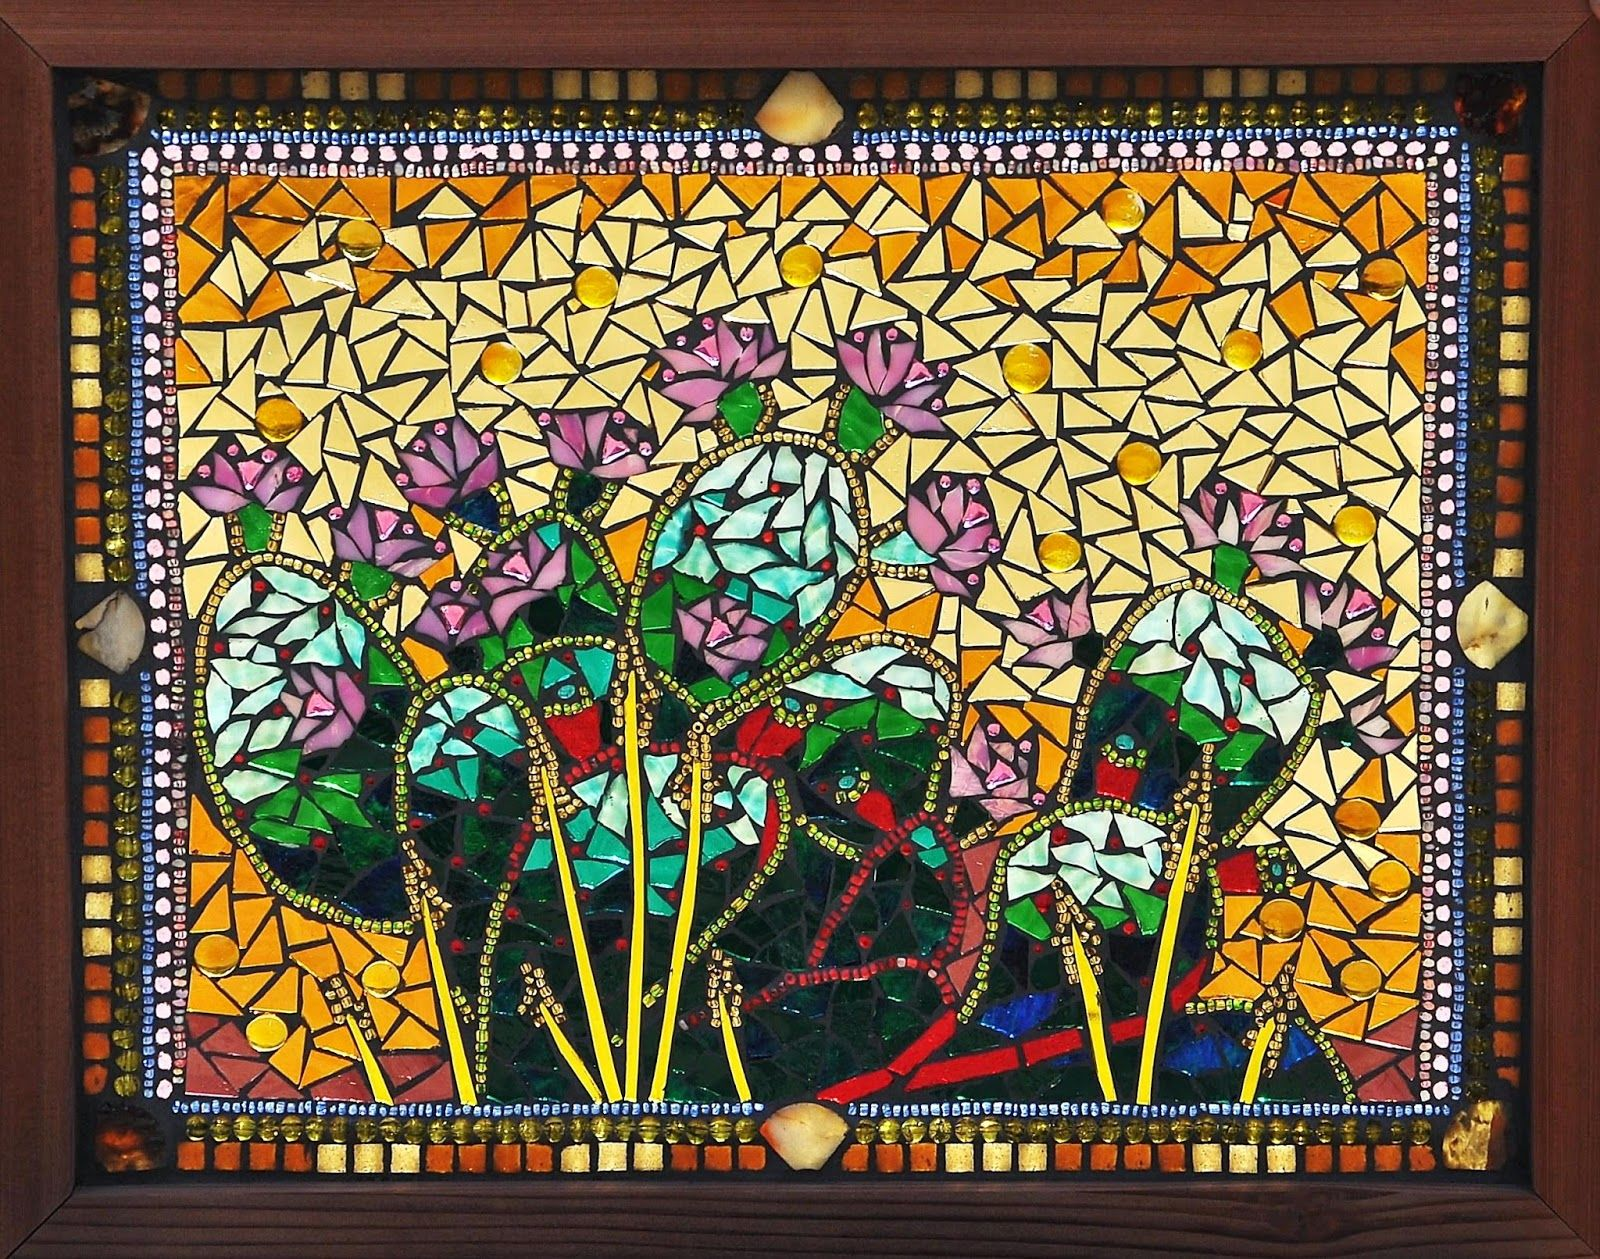 Kathleen Dalrymple Gl Artist Basking In The Sunlight On Mosaic Stained